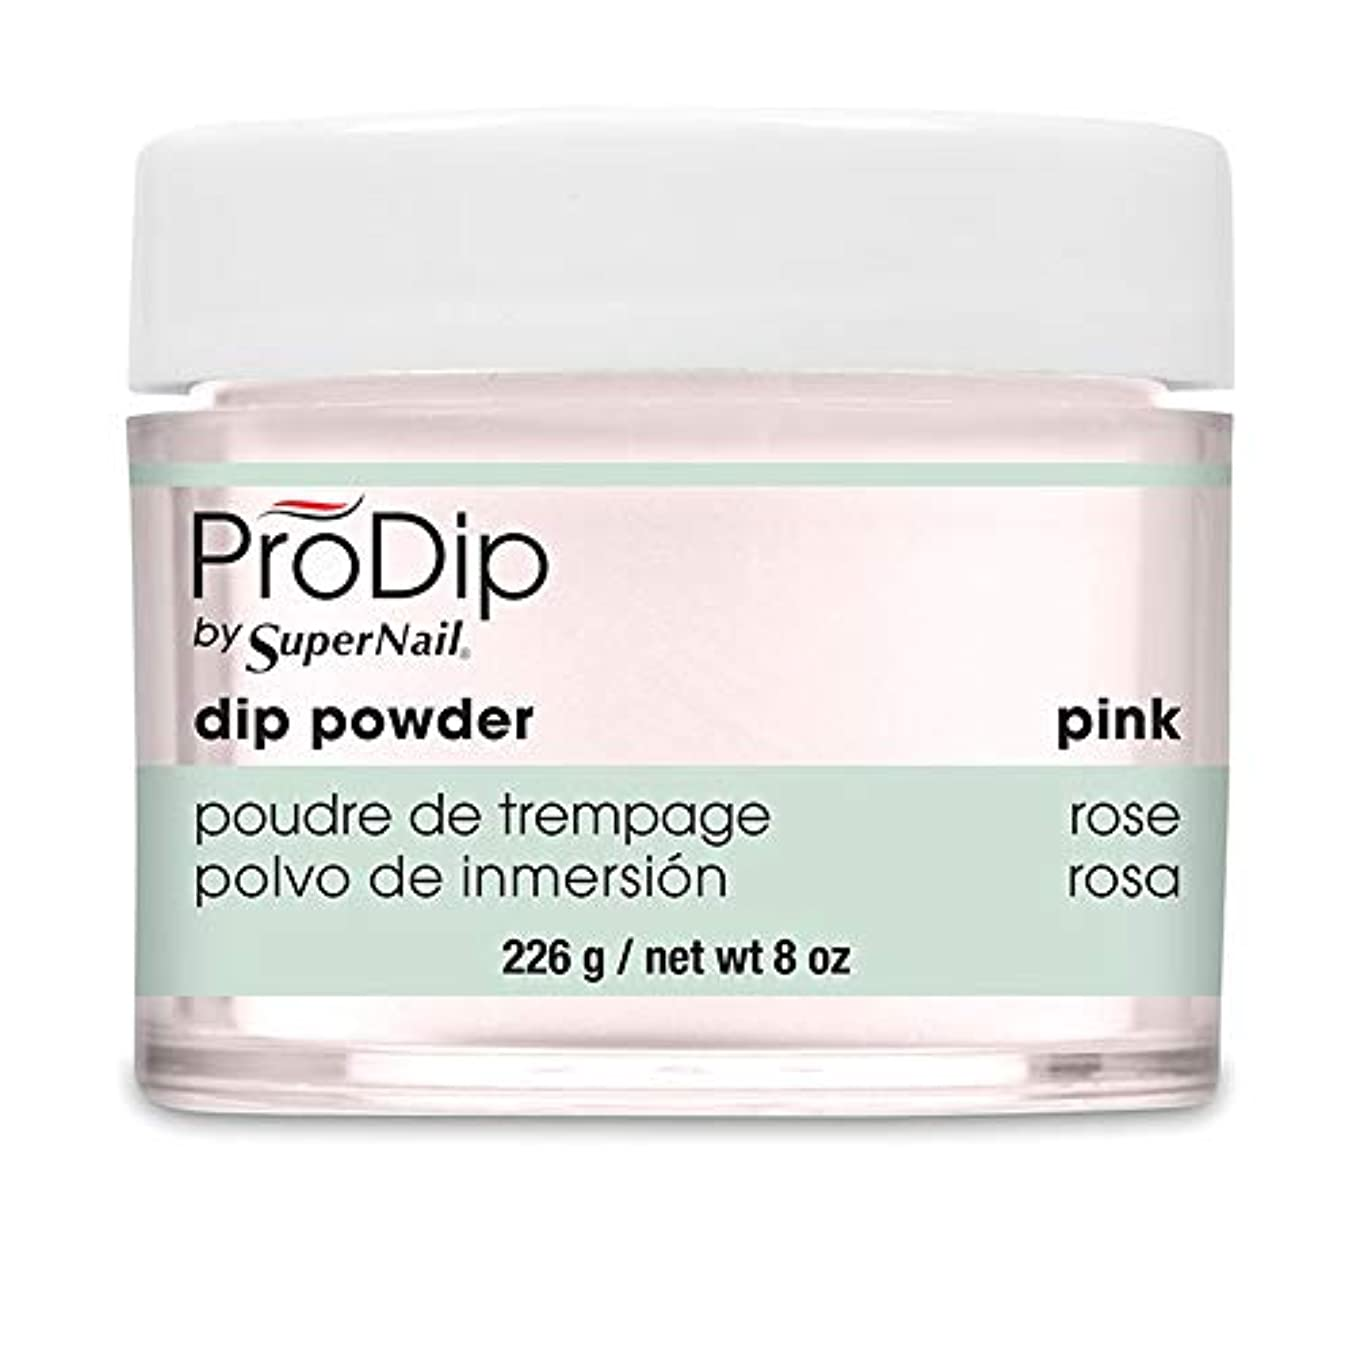 SuperNail - ProDip - Dip Powder - Pink - 226 g/8 oz